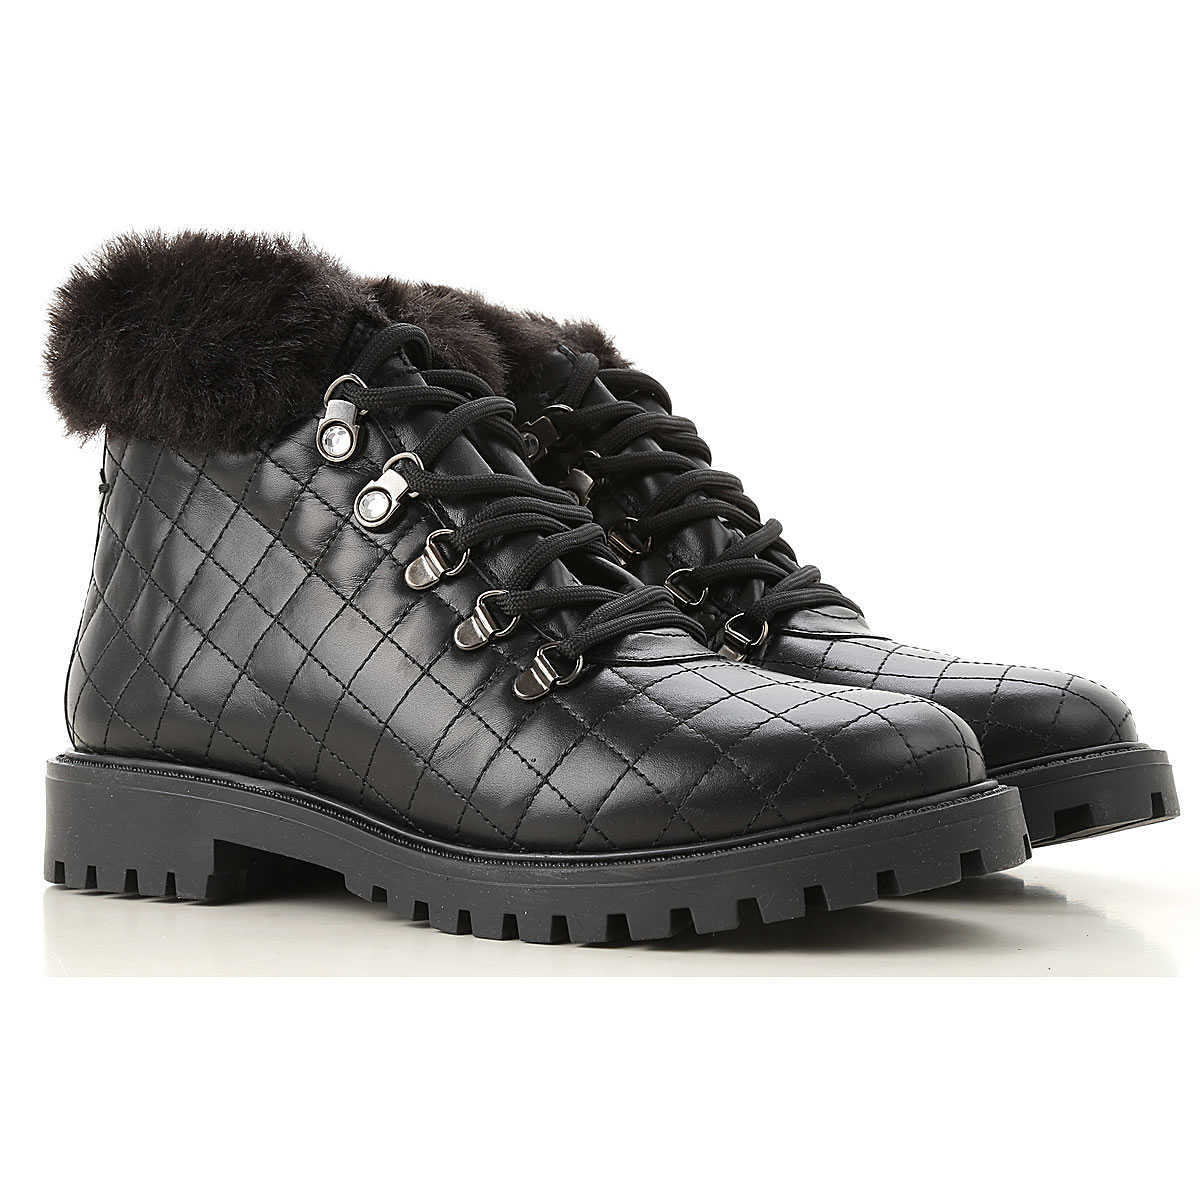 Guess Boots for Women Booties On Sale in Outlet DK - GOOFASH - Womens BOOTS